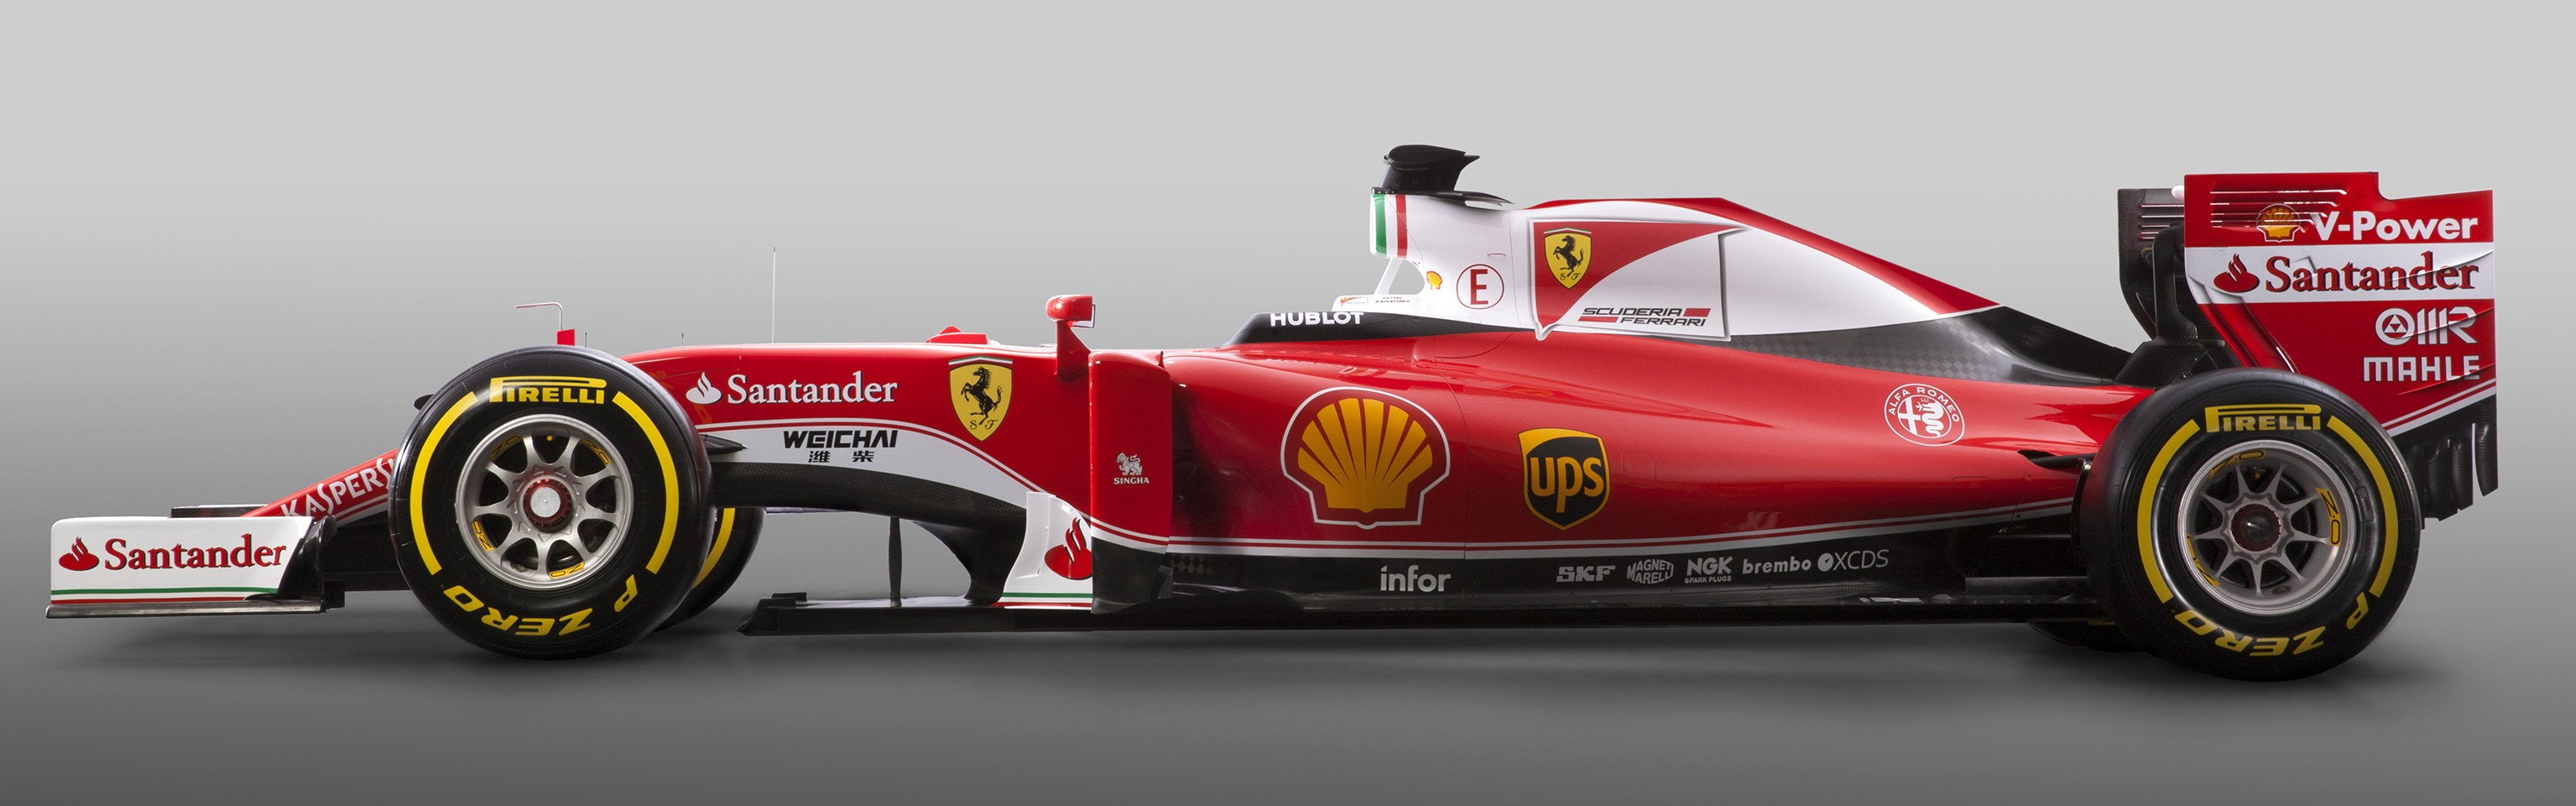 Ferrari Sf16 H Unveiled Ambitions Of Title Challenge